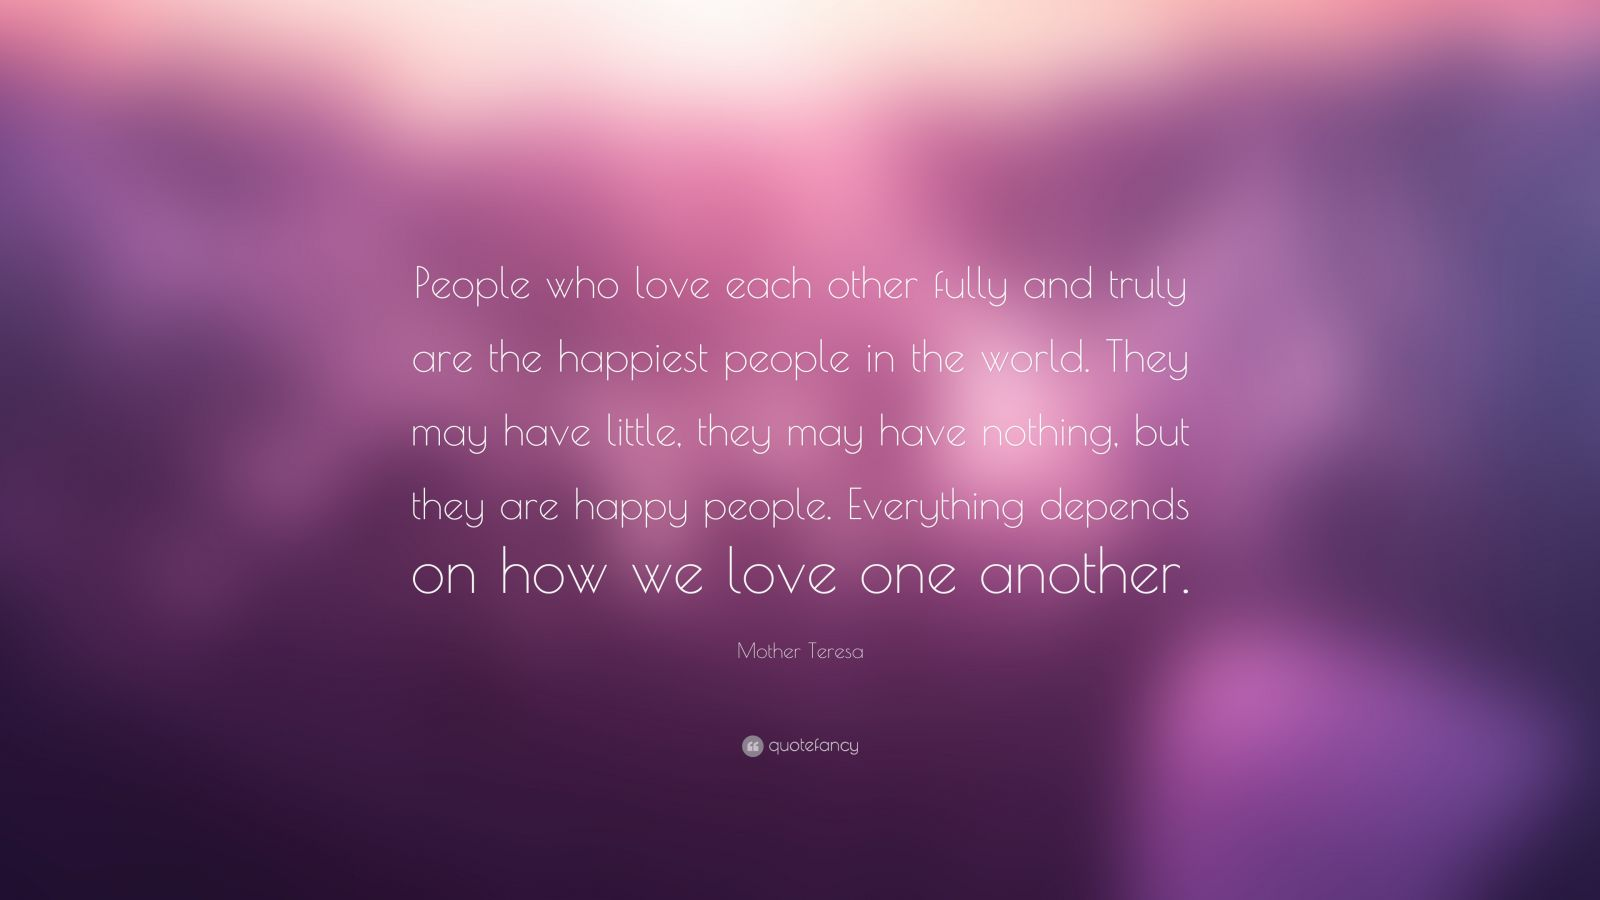 """Mother Teresa Quote: """"People who love each other fully and truly are the happiest people in the world. They may have little, they may have nothing, but they are happy people. Everything depends on how we love one another."""""""